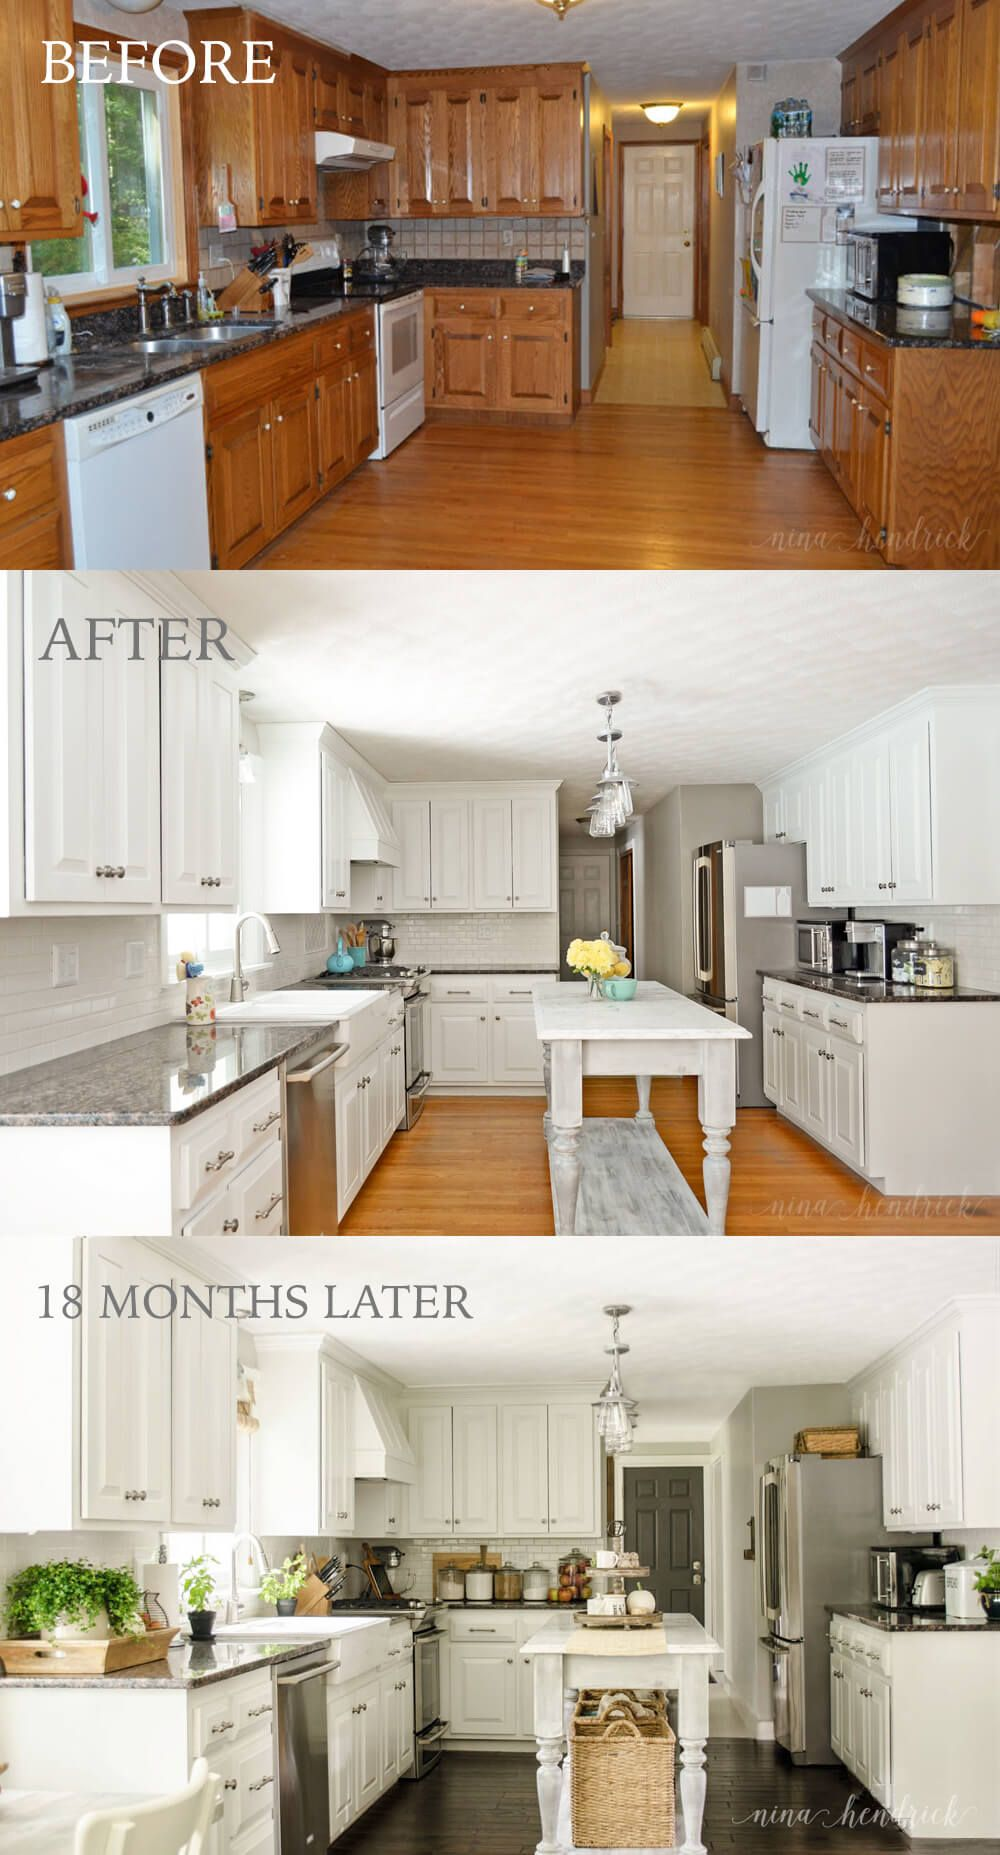 25 Amazing Before And After Budget Friendly Kitchen Makeover Ideas Kitchen Design Kitchen Inspirations Kitchen Renovation